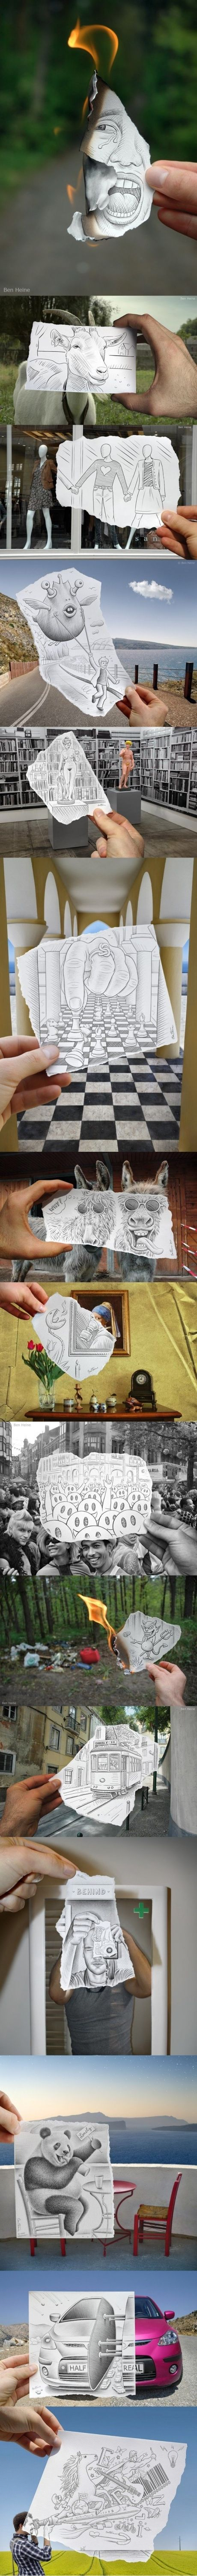 awesome drawings, perception